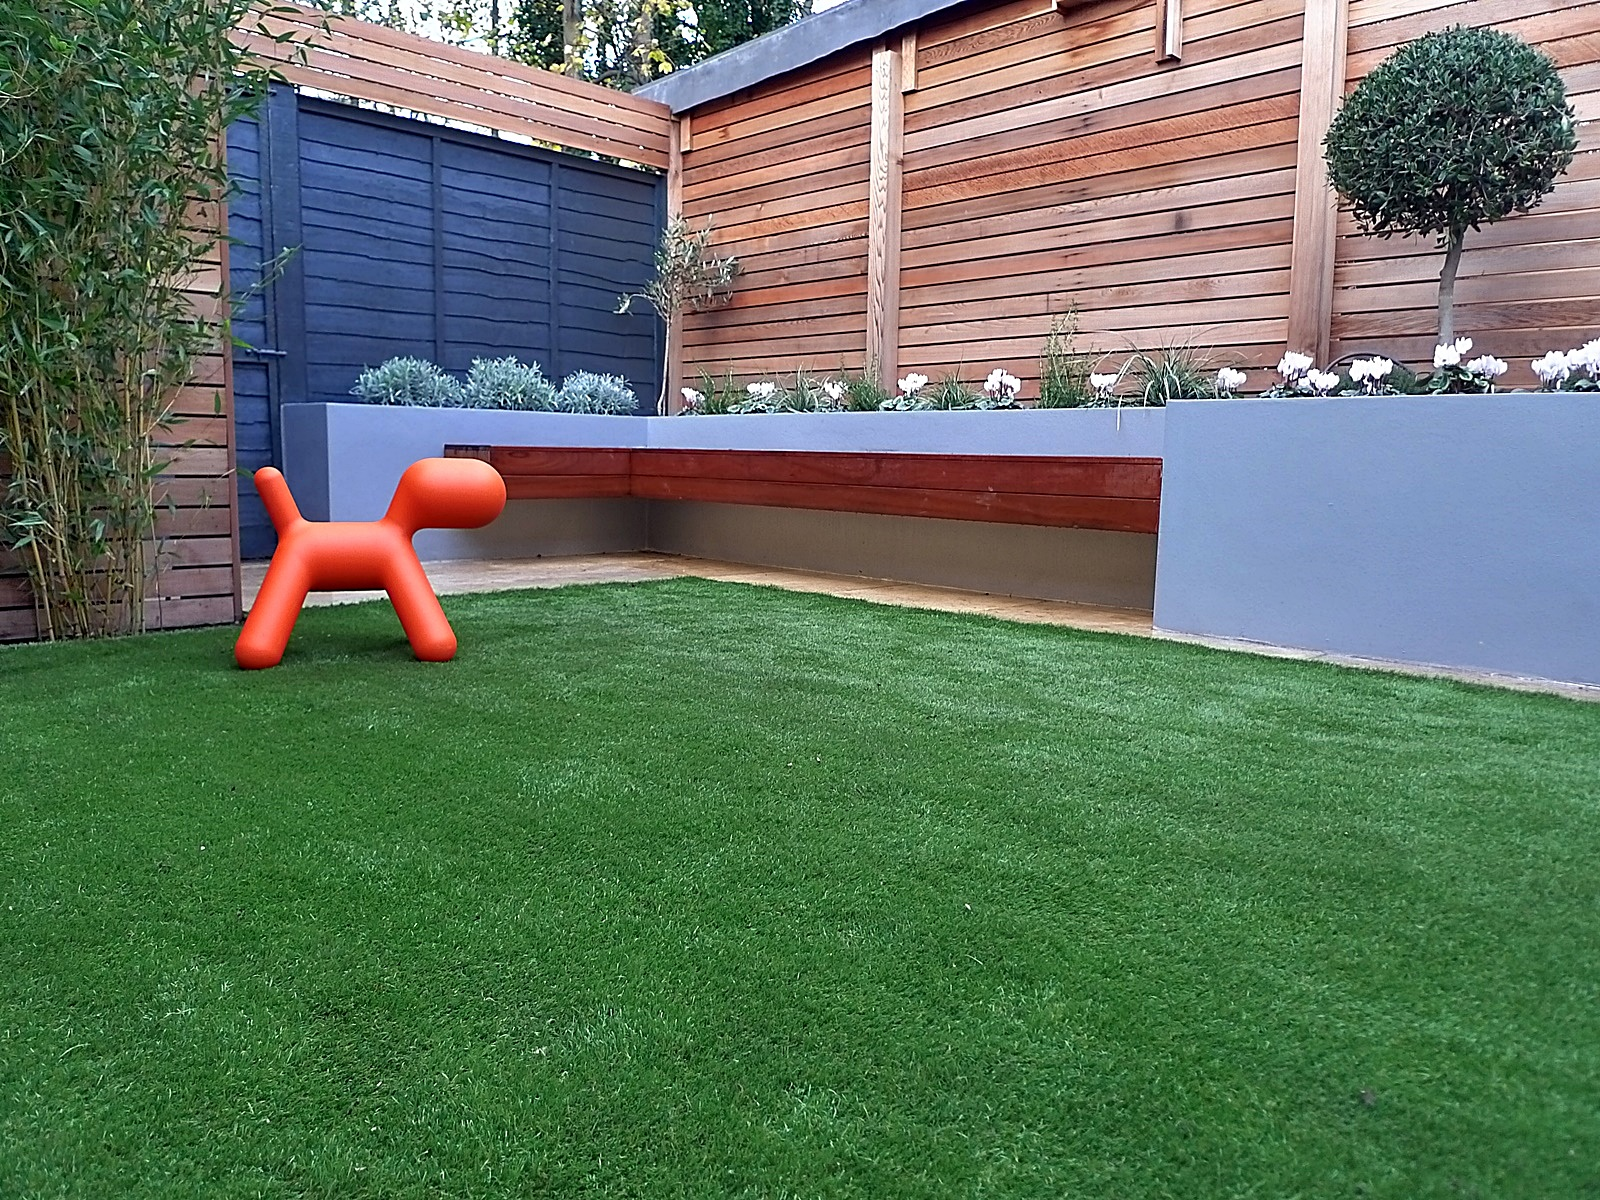 Raised beds cedar screen fence easy fake grass topiary London grey walls Dulwich Clapham Chelsea